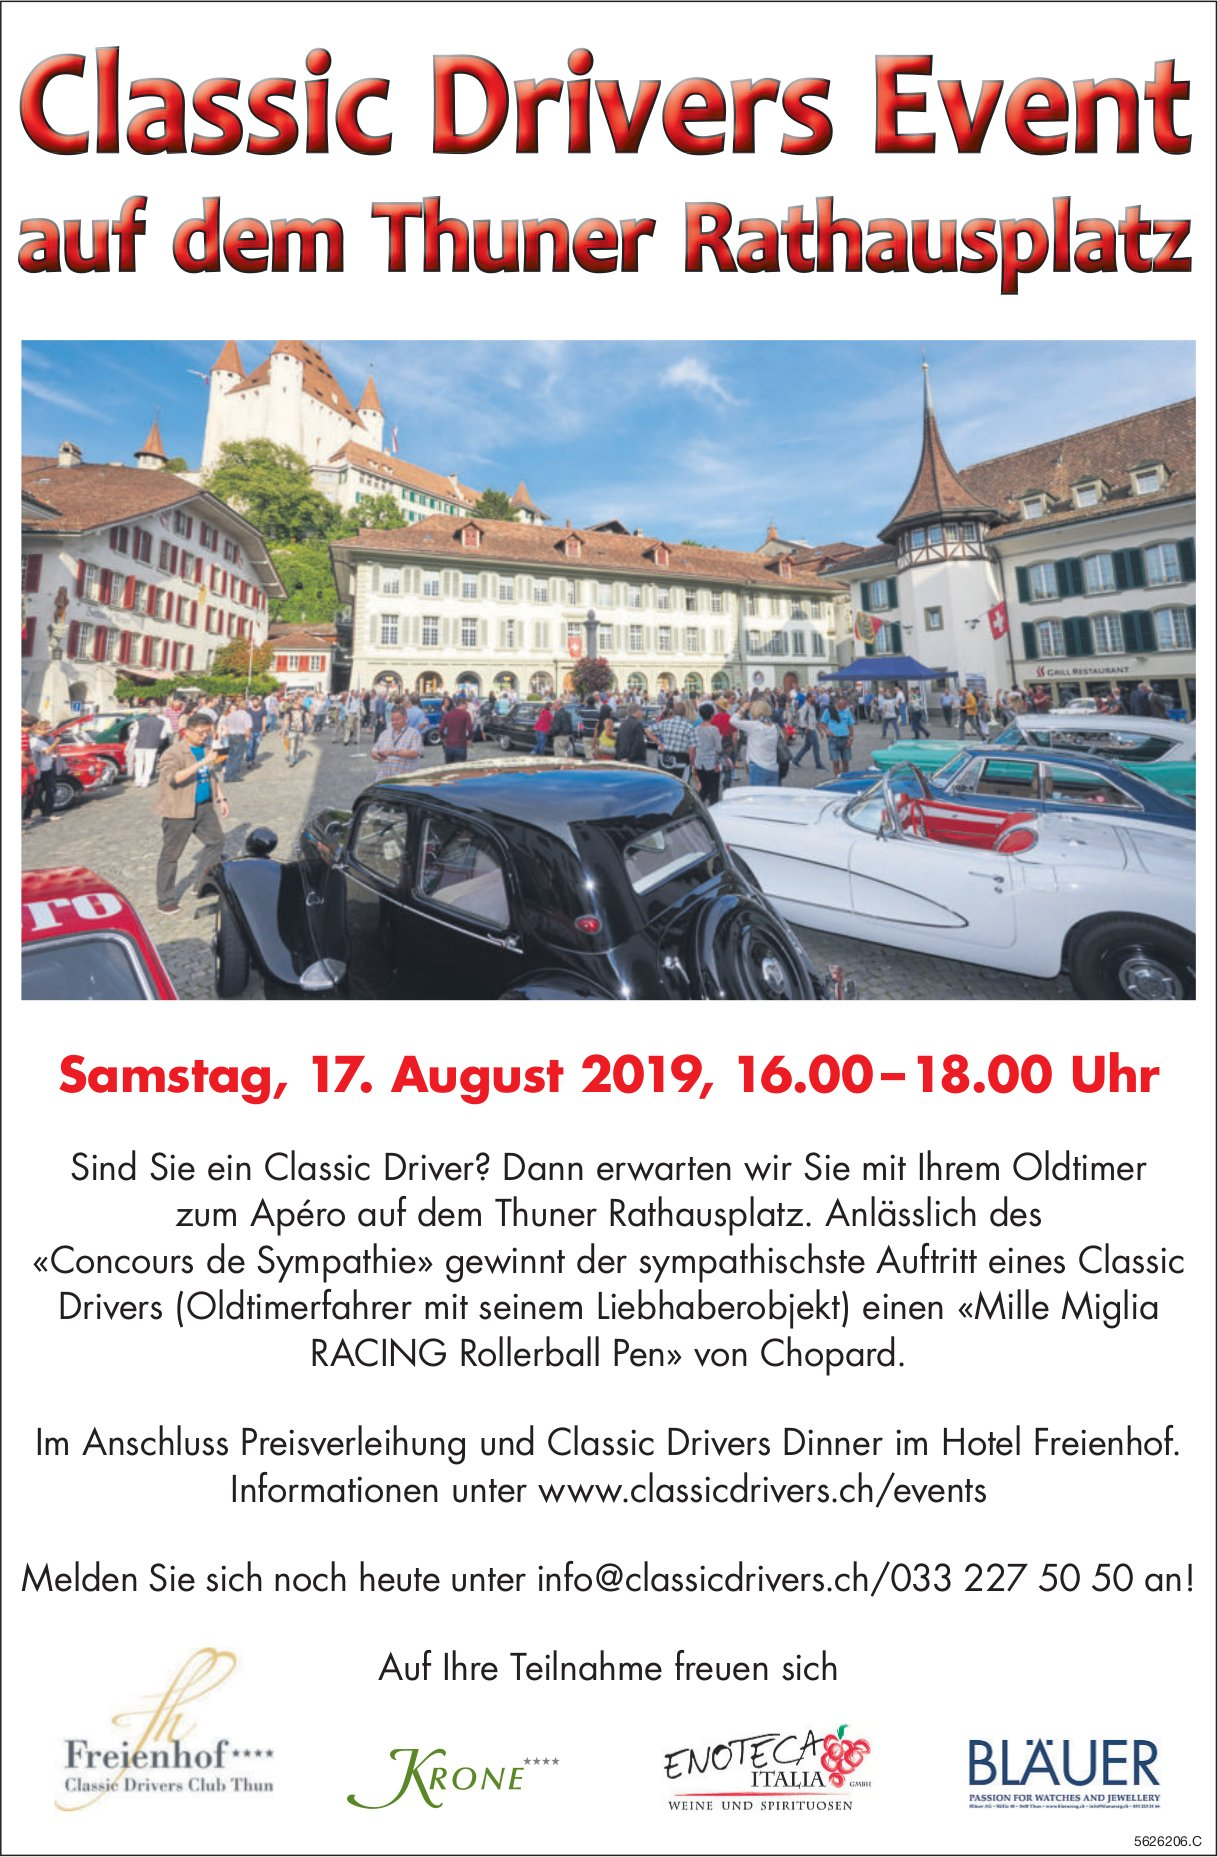 Classic Drivers Event auf dem Thuner Rathausplatz am 17. August